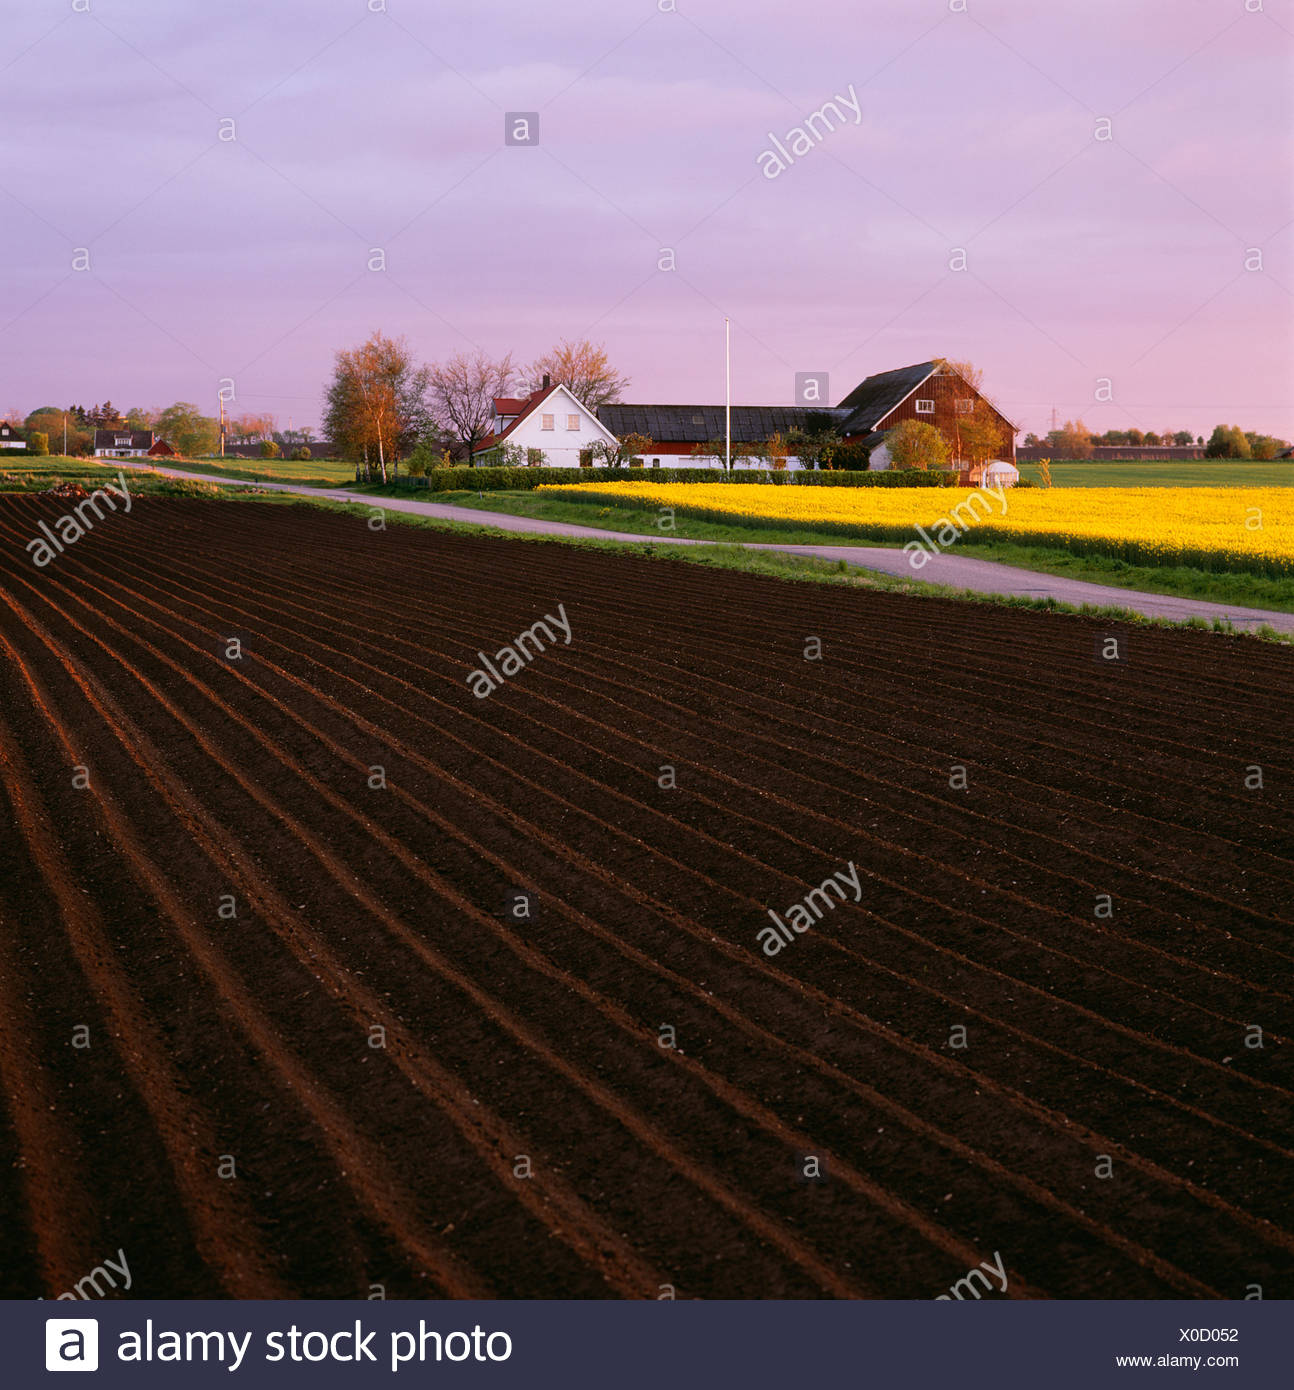 Fields and a farm, Sweden. - Stock Image